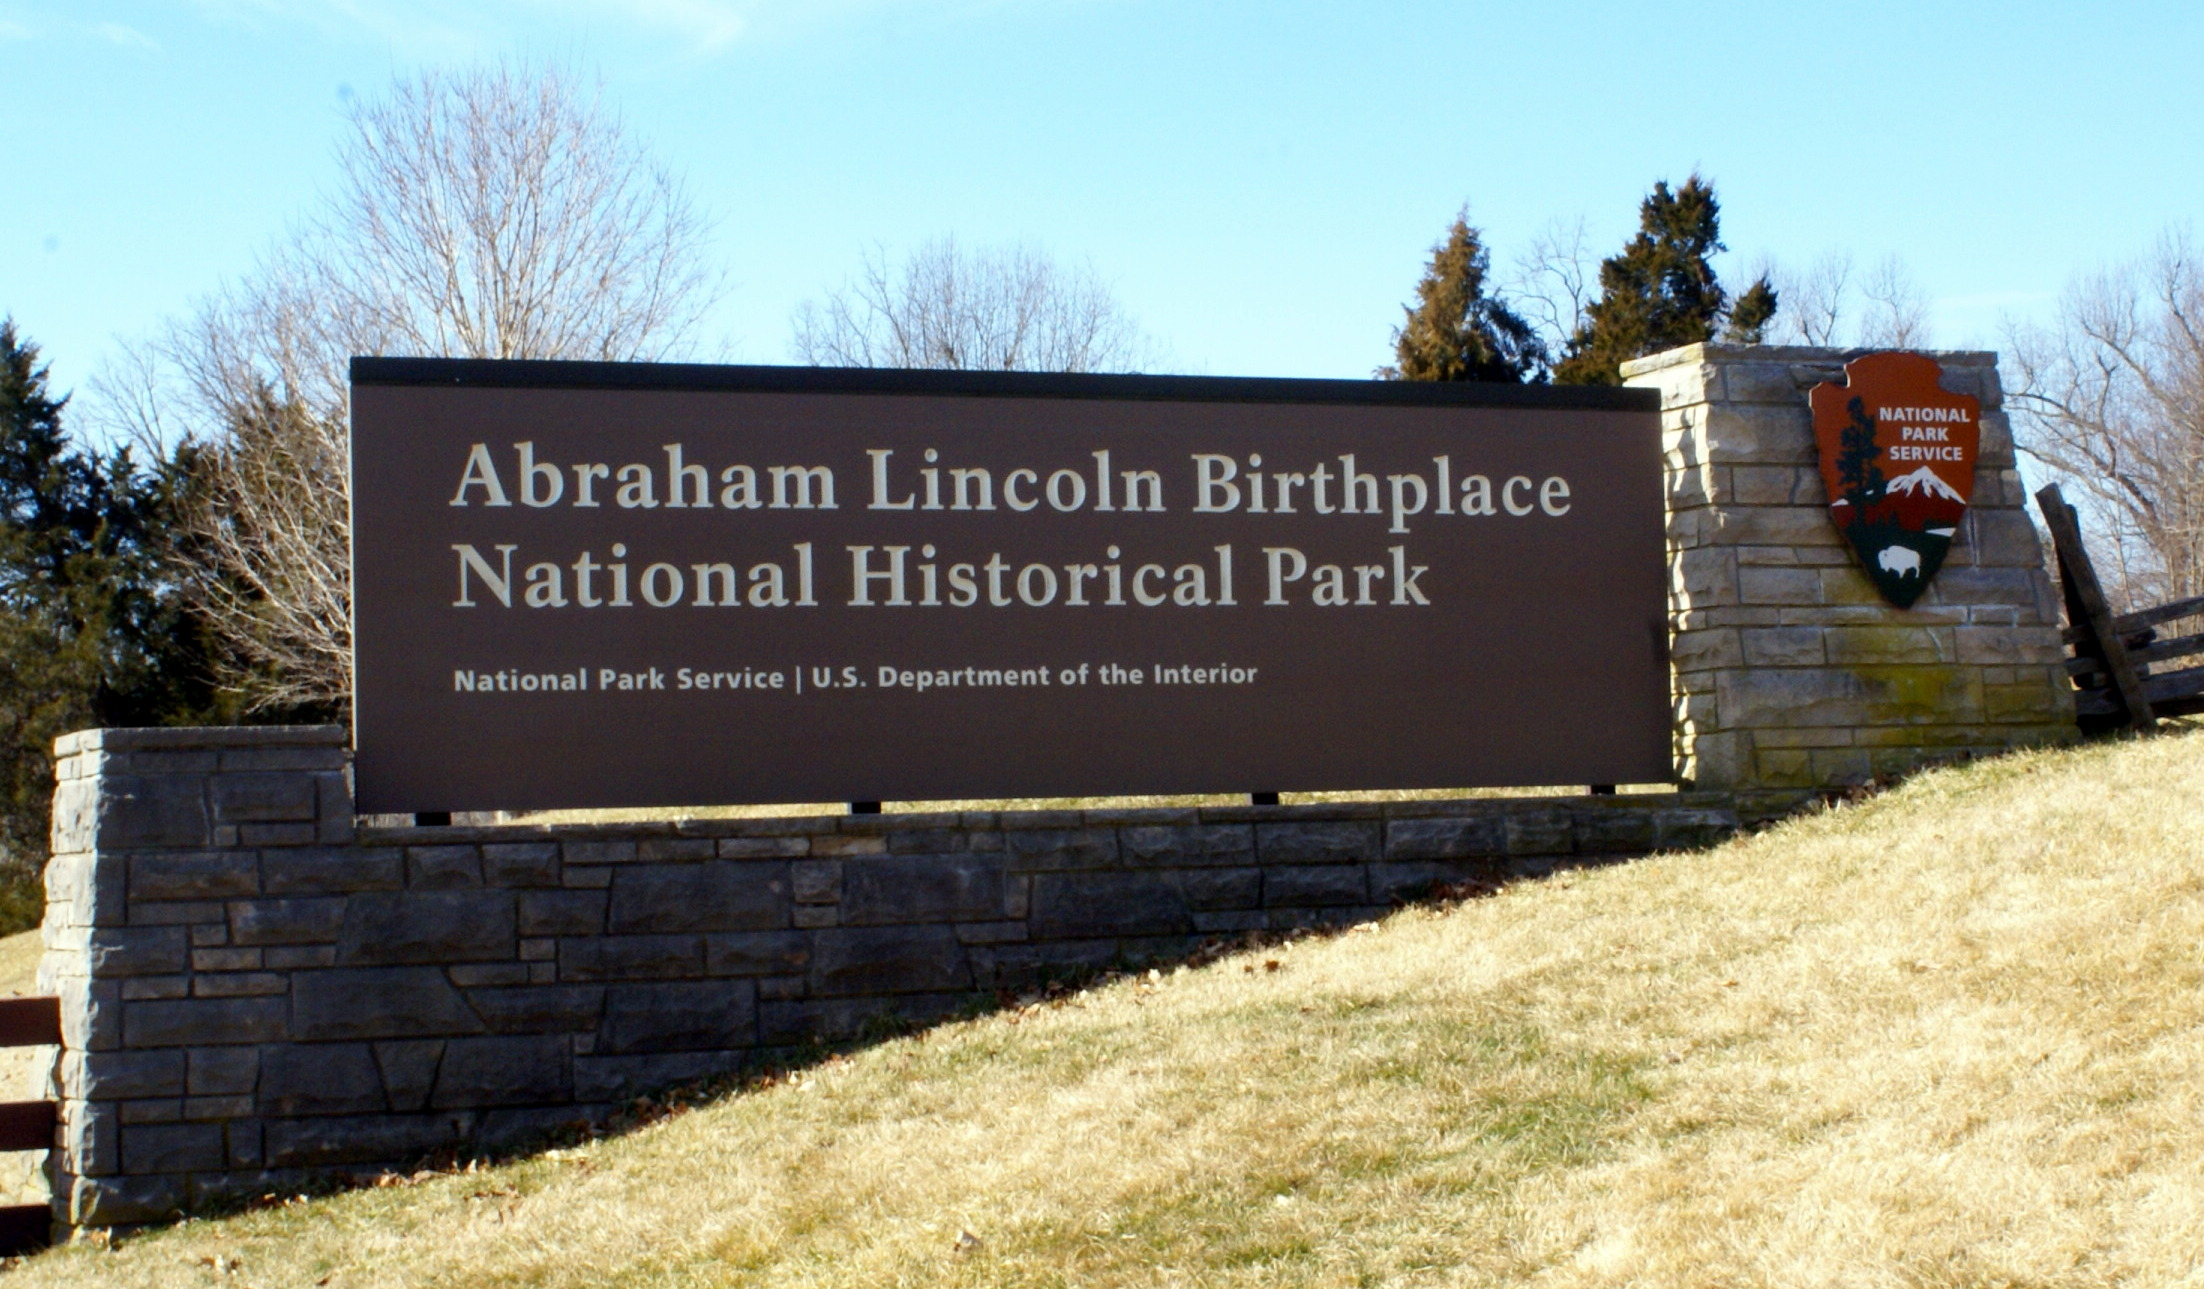 Abraham Lincoln Birthplace National Historic Park entry sign